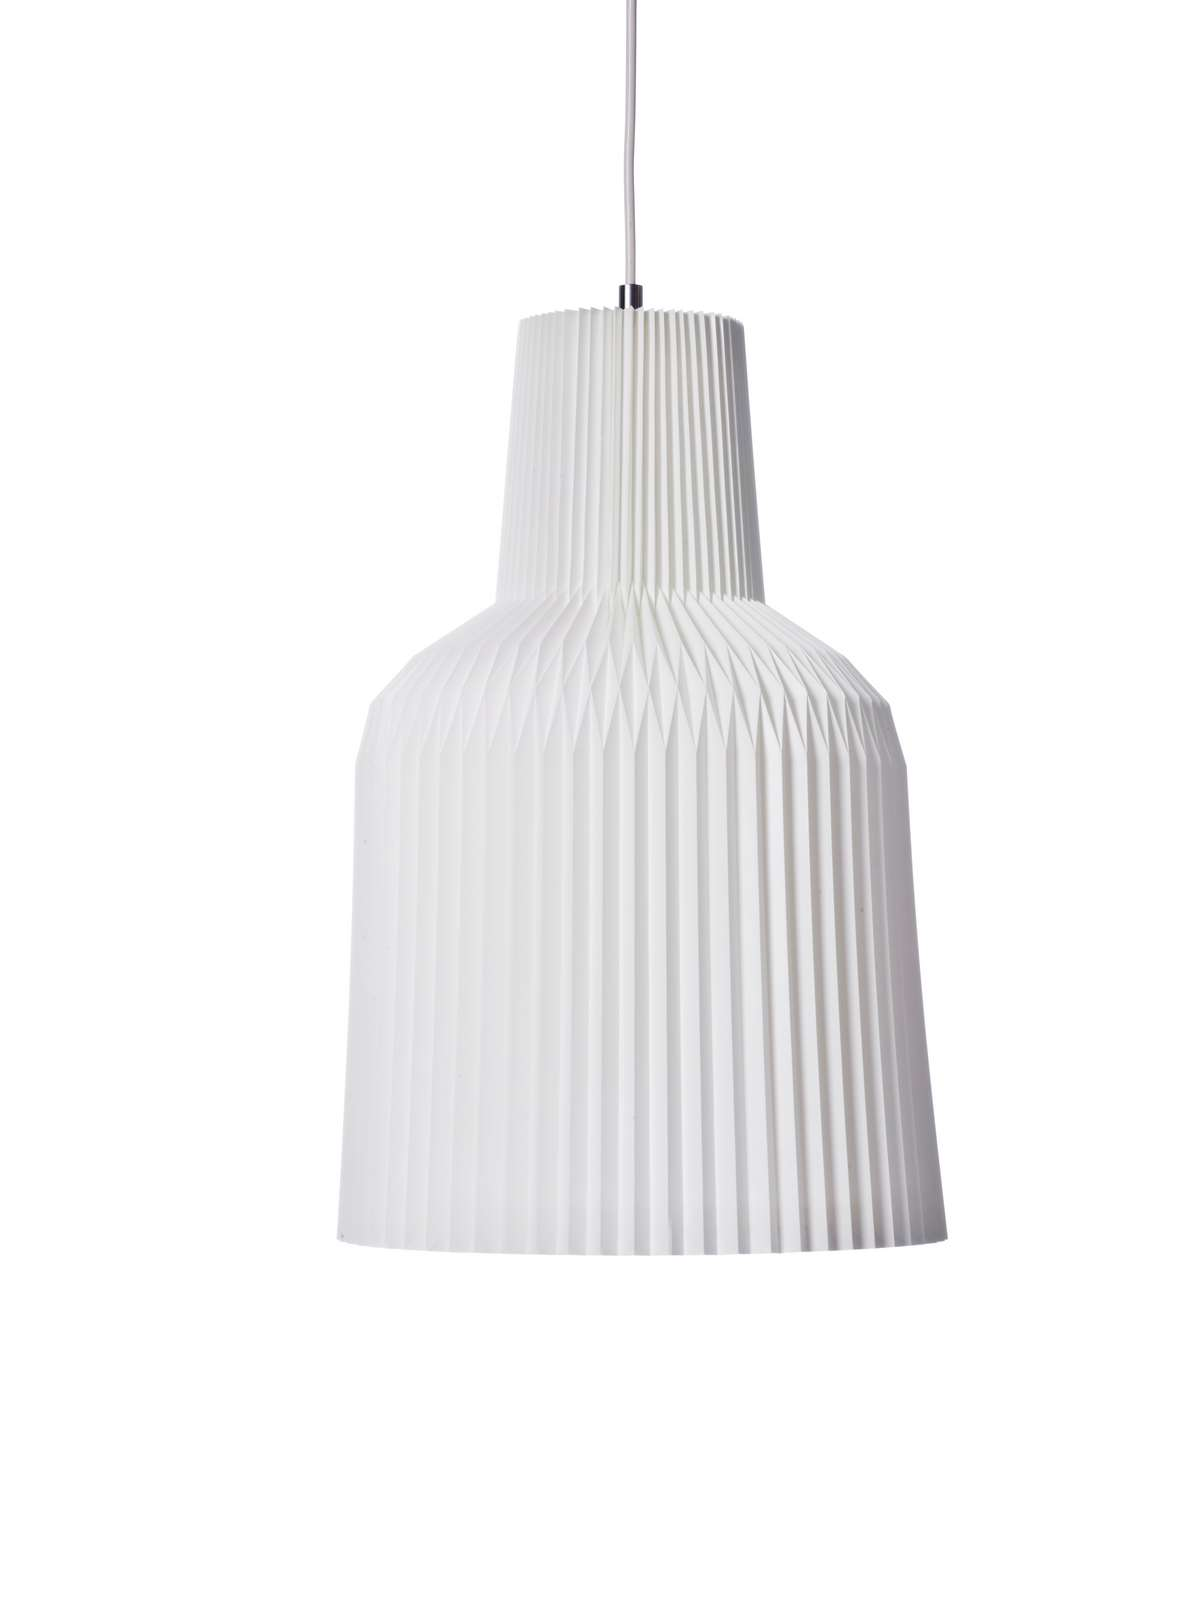 Le Klint 145 Pendant Light Large